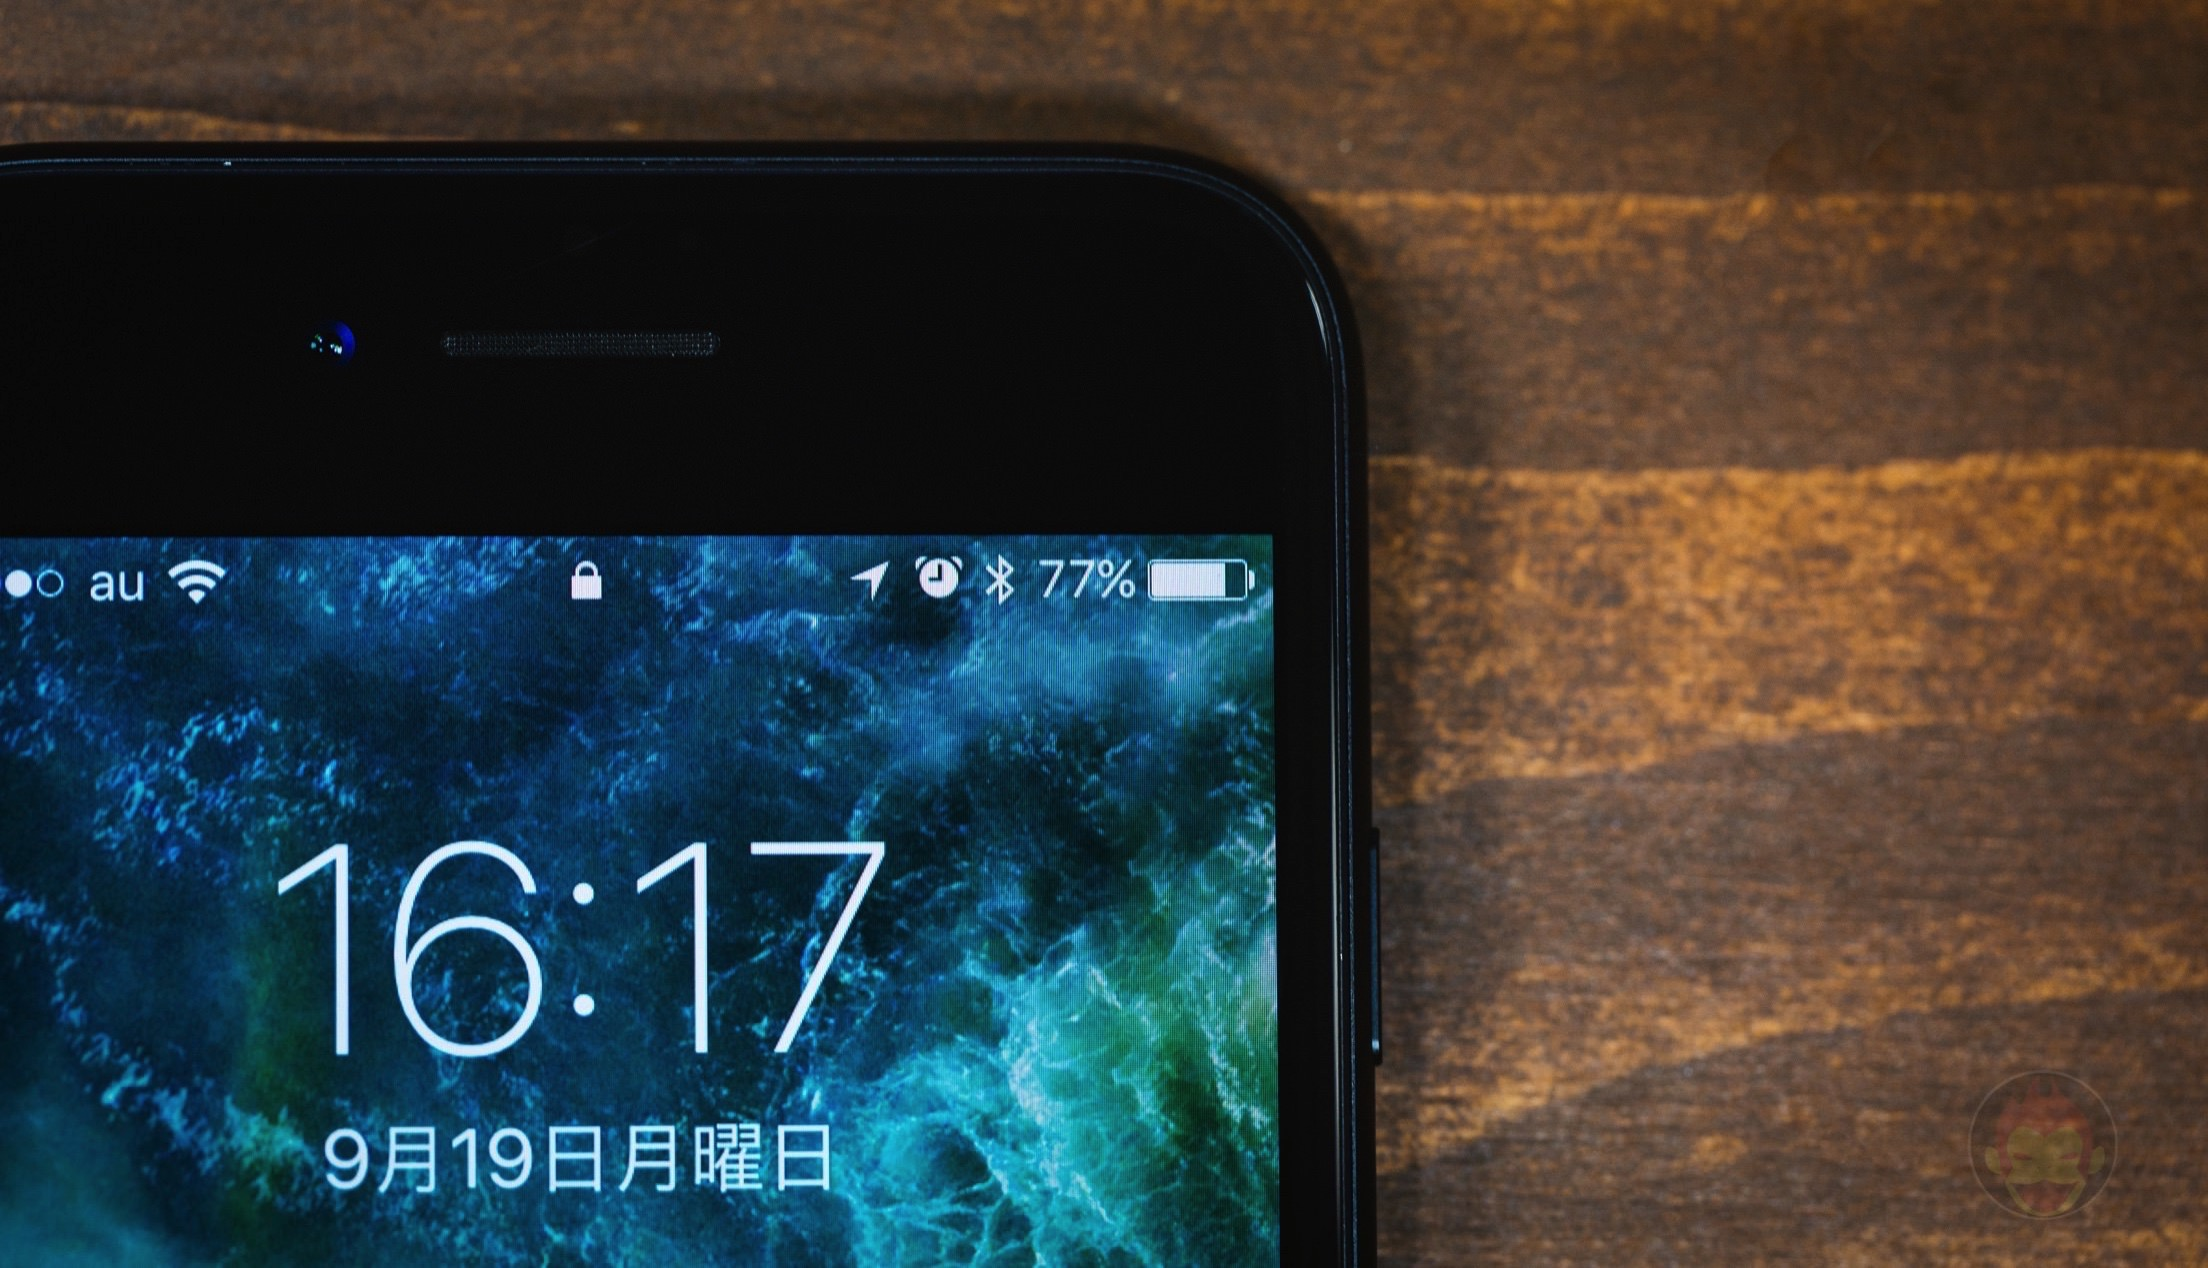 iPhone-7-Review-04.jpg